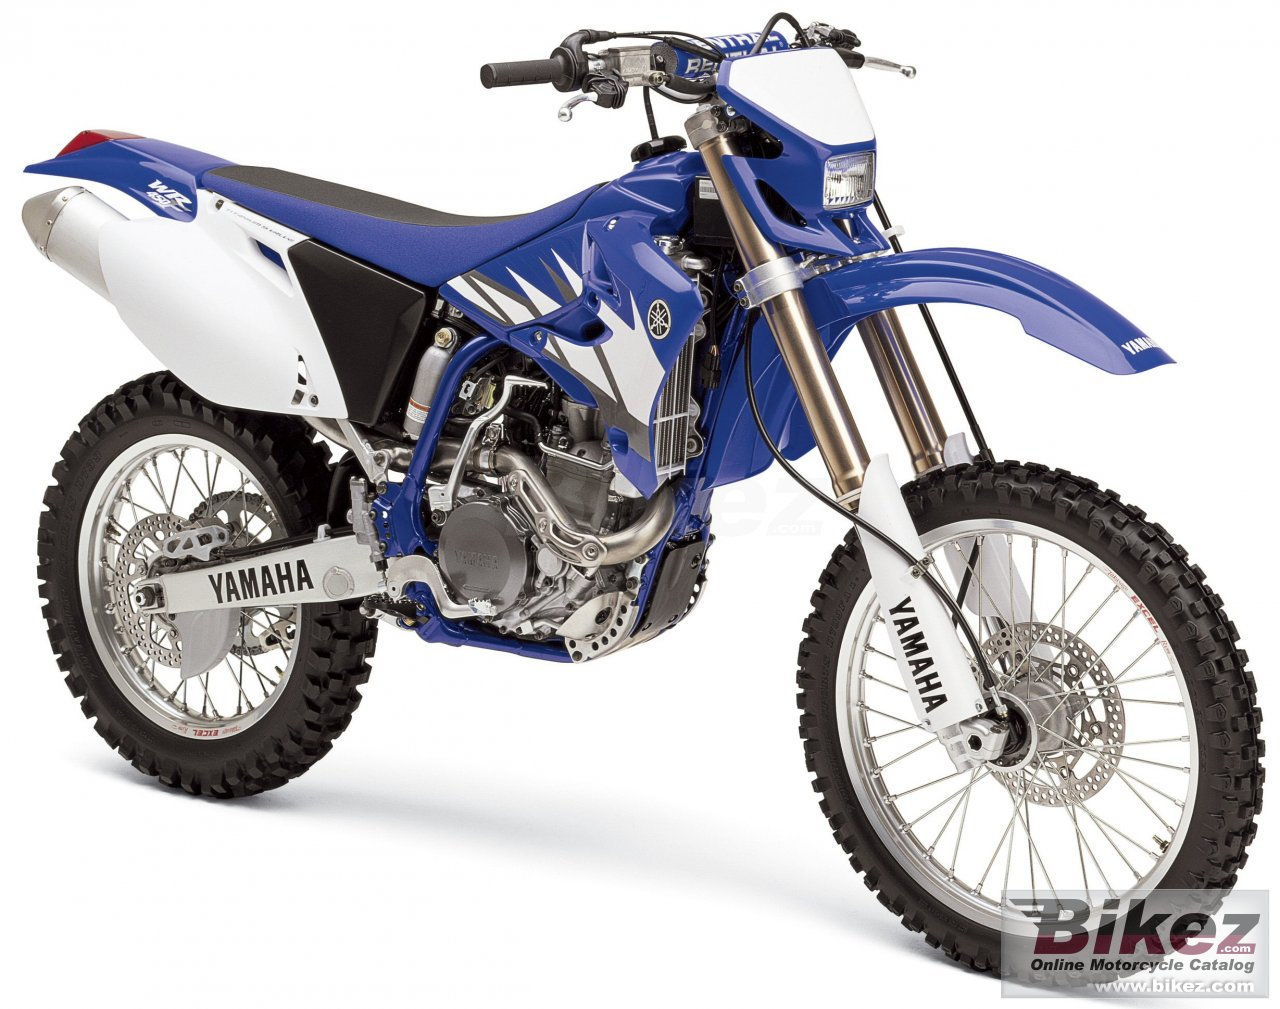 Big Yamaha wr 450 f picture and wallpaper from Bikez.com